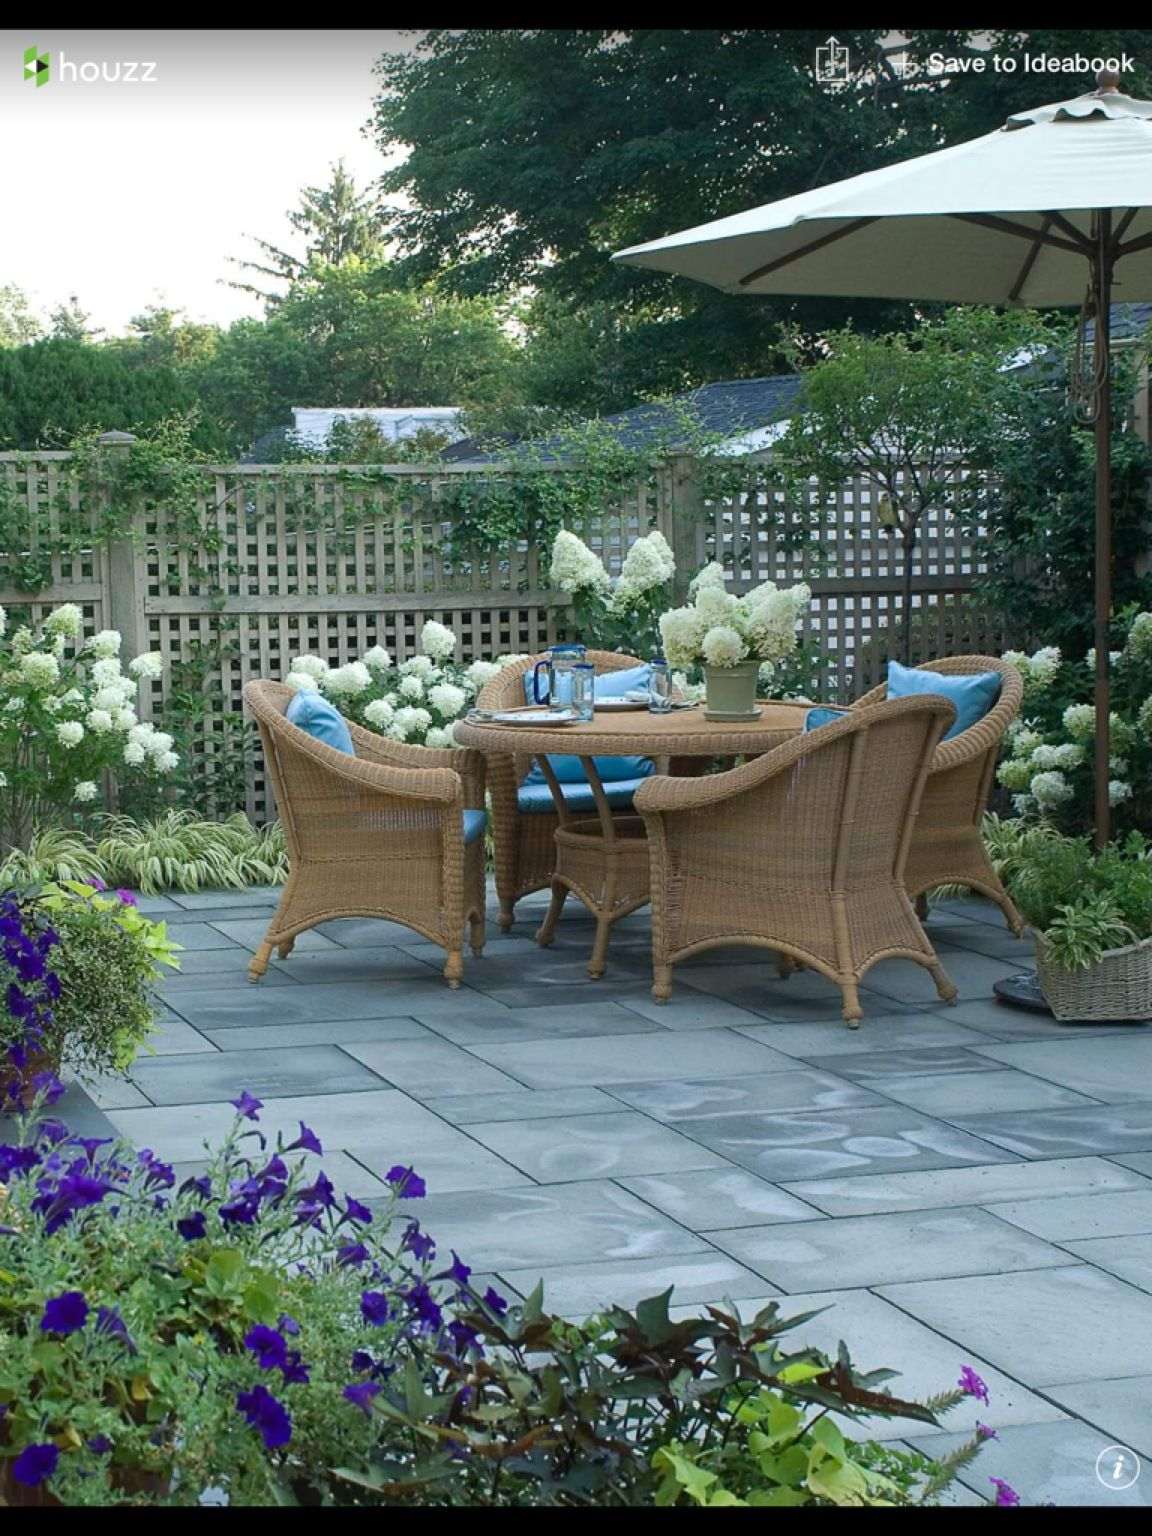 How Much Does A Fence Cost? | Patio garden, Small backyard ...